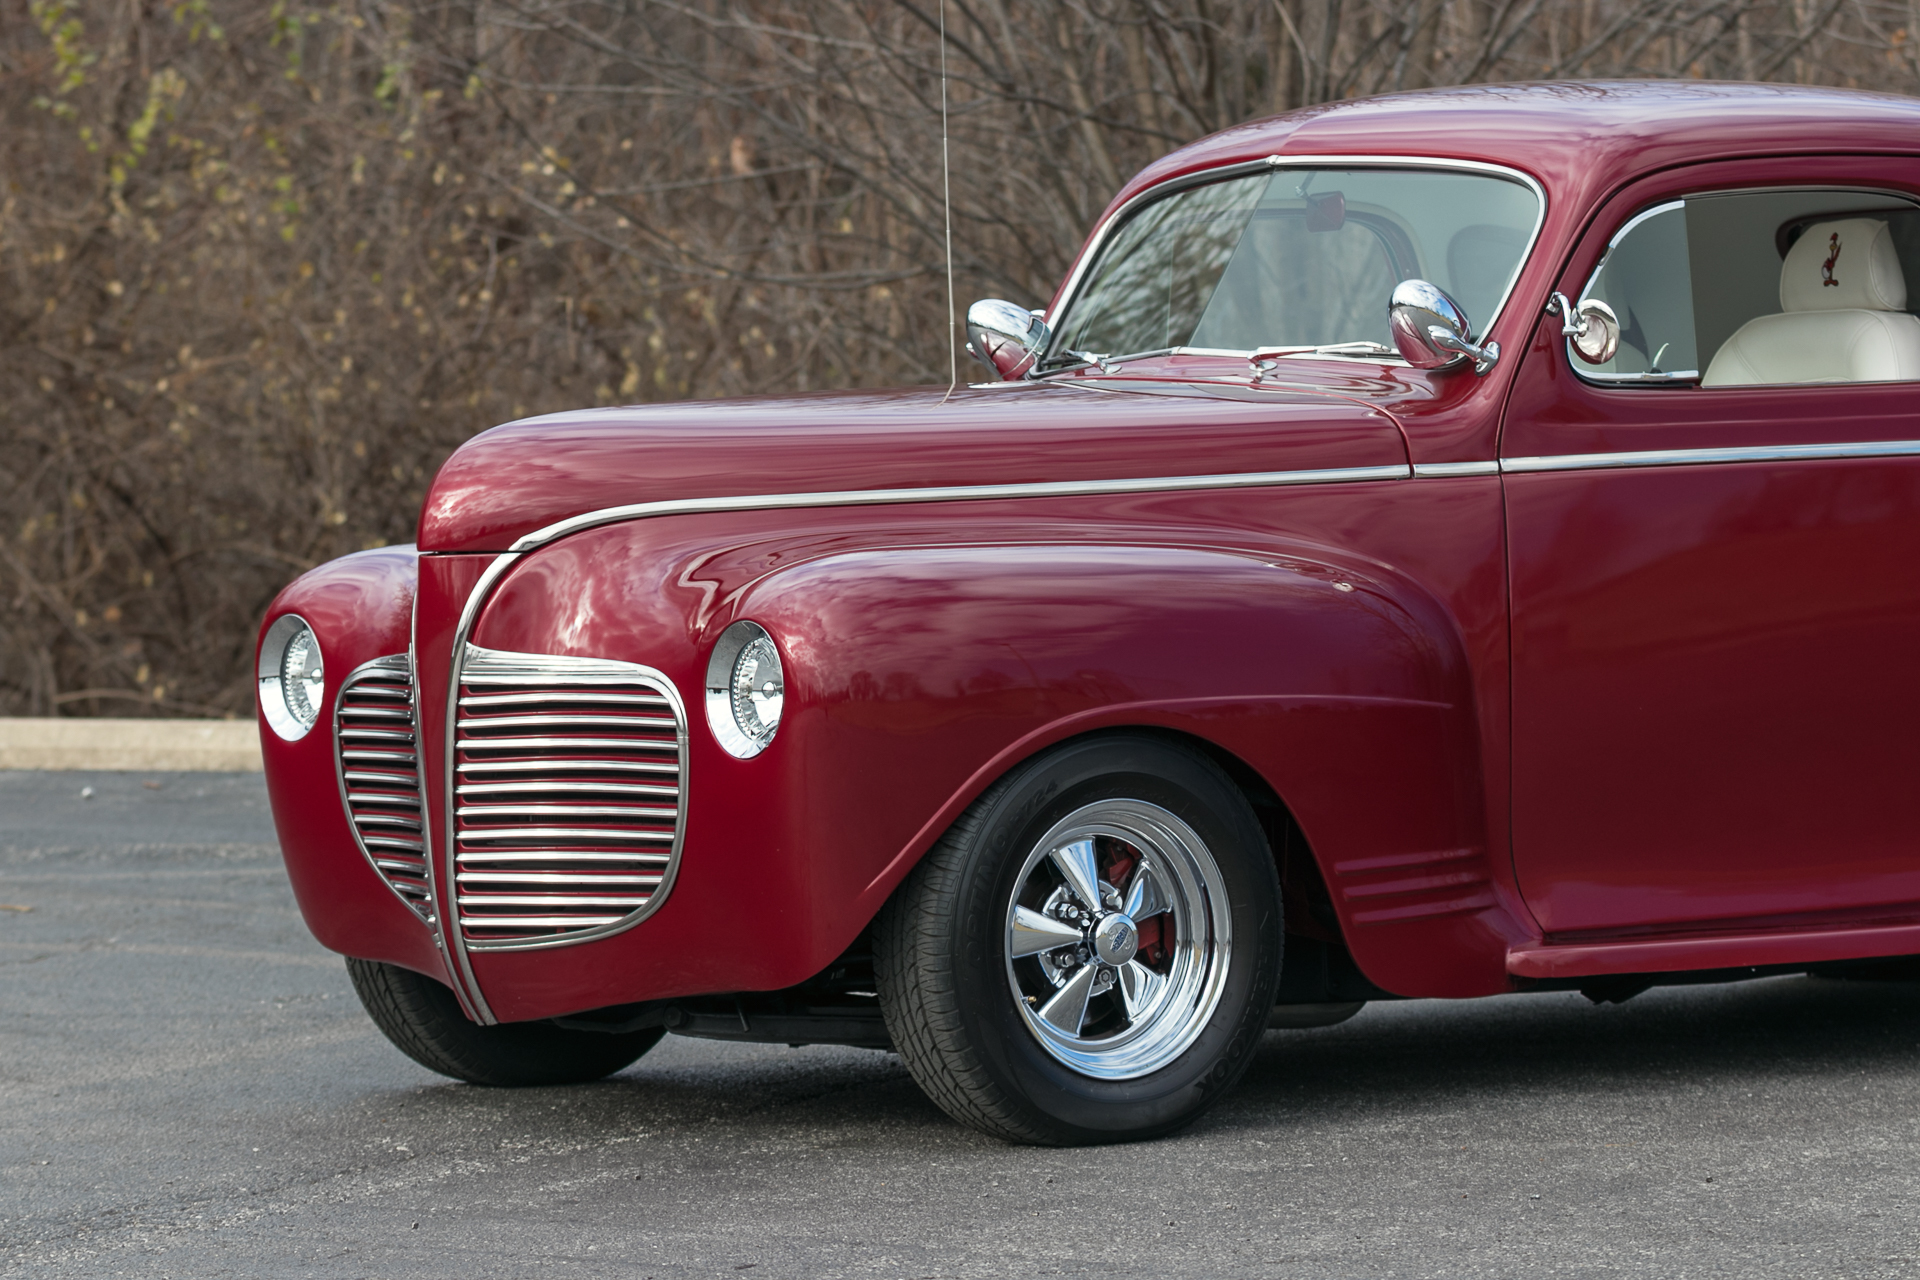 1941 Plymouth Special Deluxe Fast Lane Classic Cars 4 Door